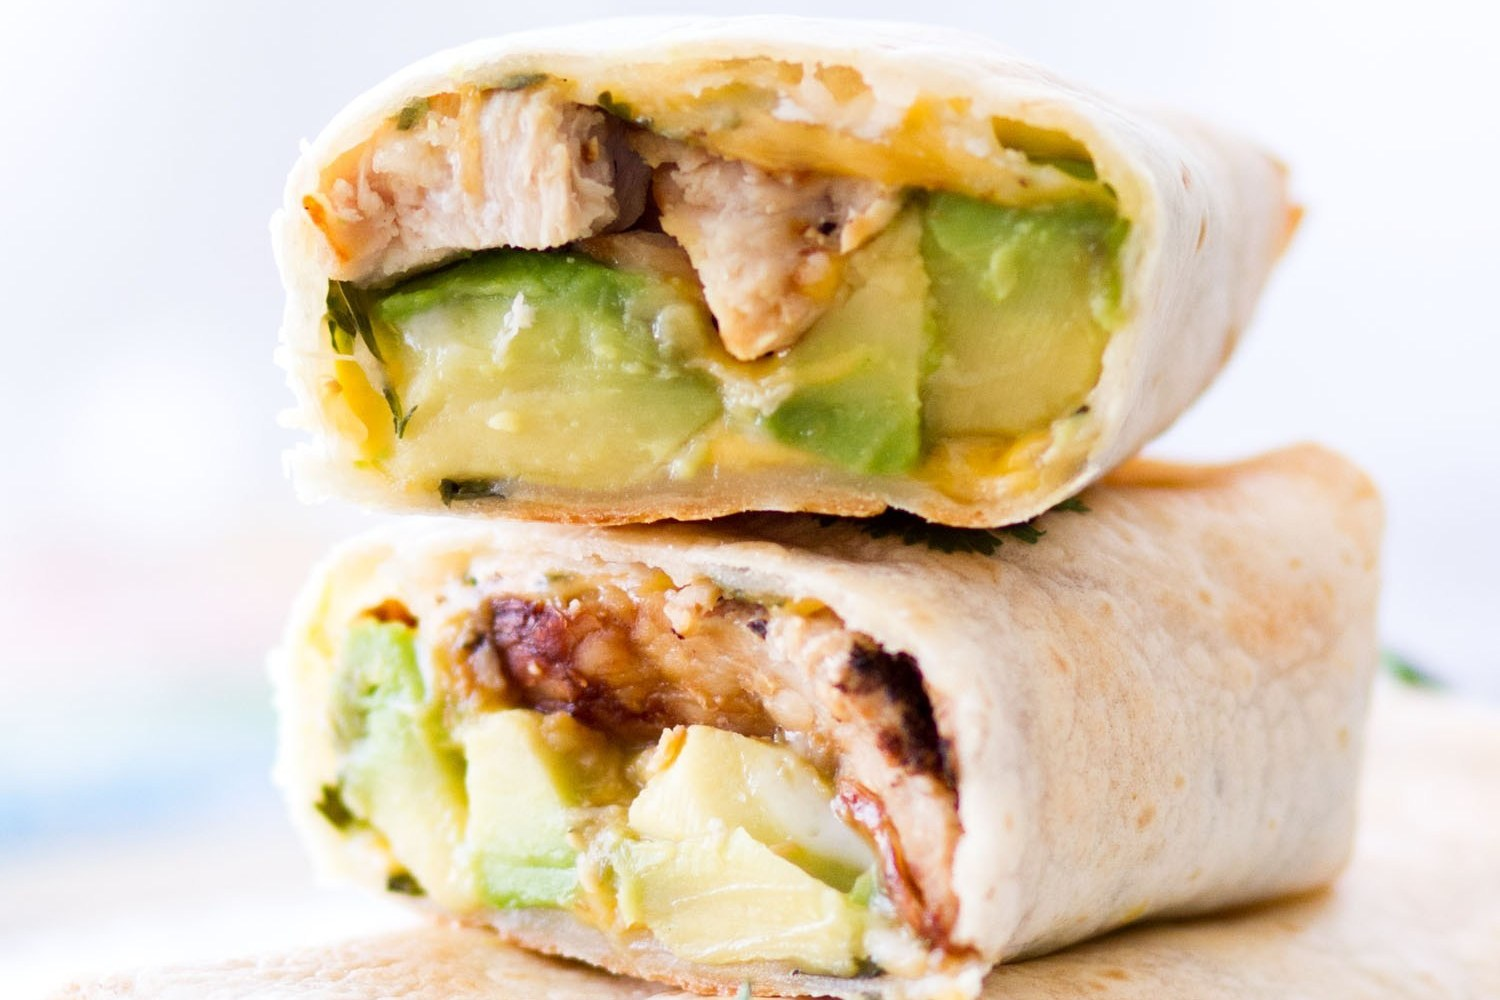 Baked Avocado Chicken Burritos Recipe Image